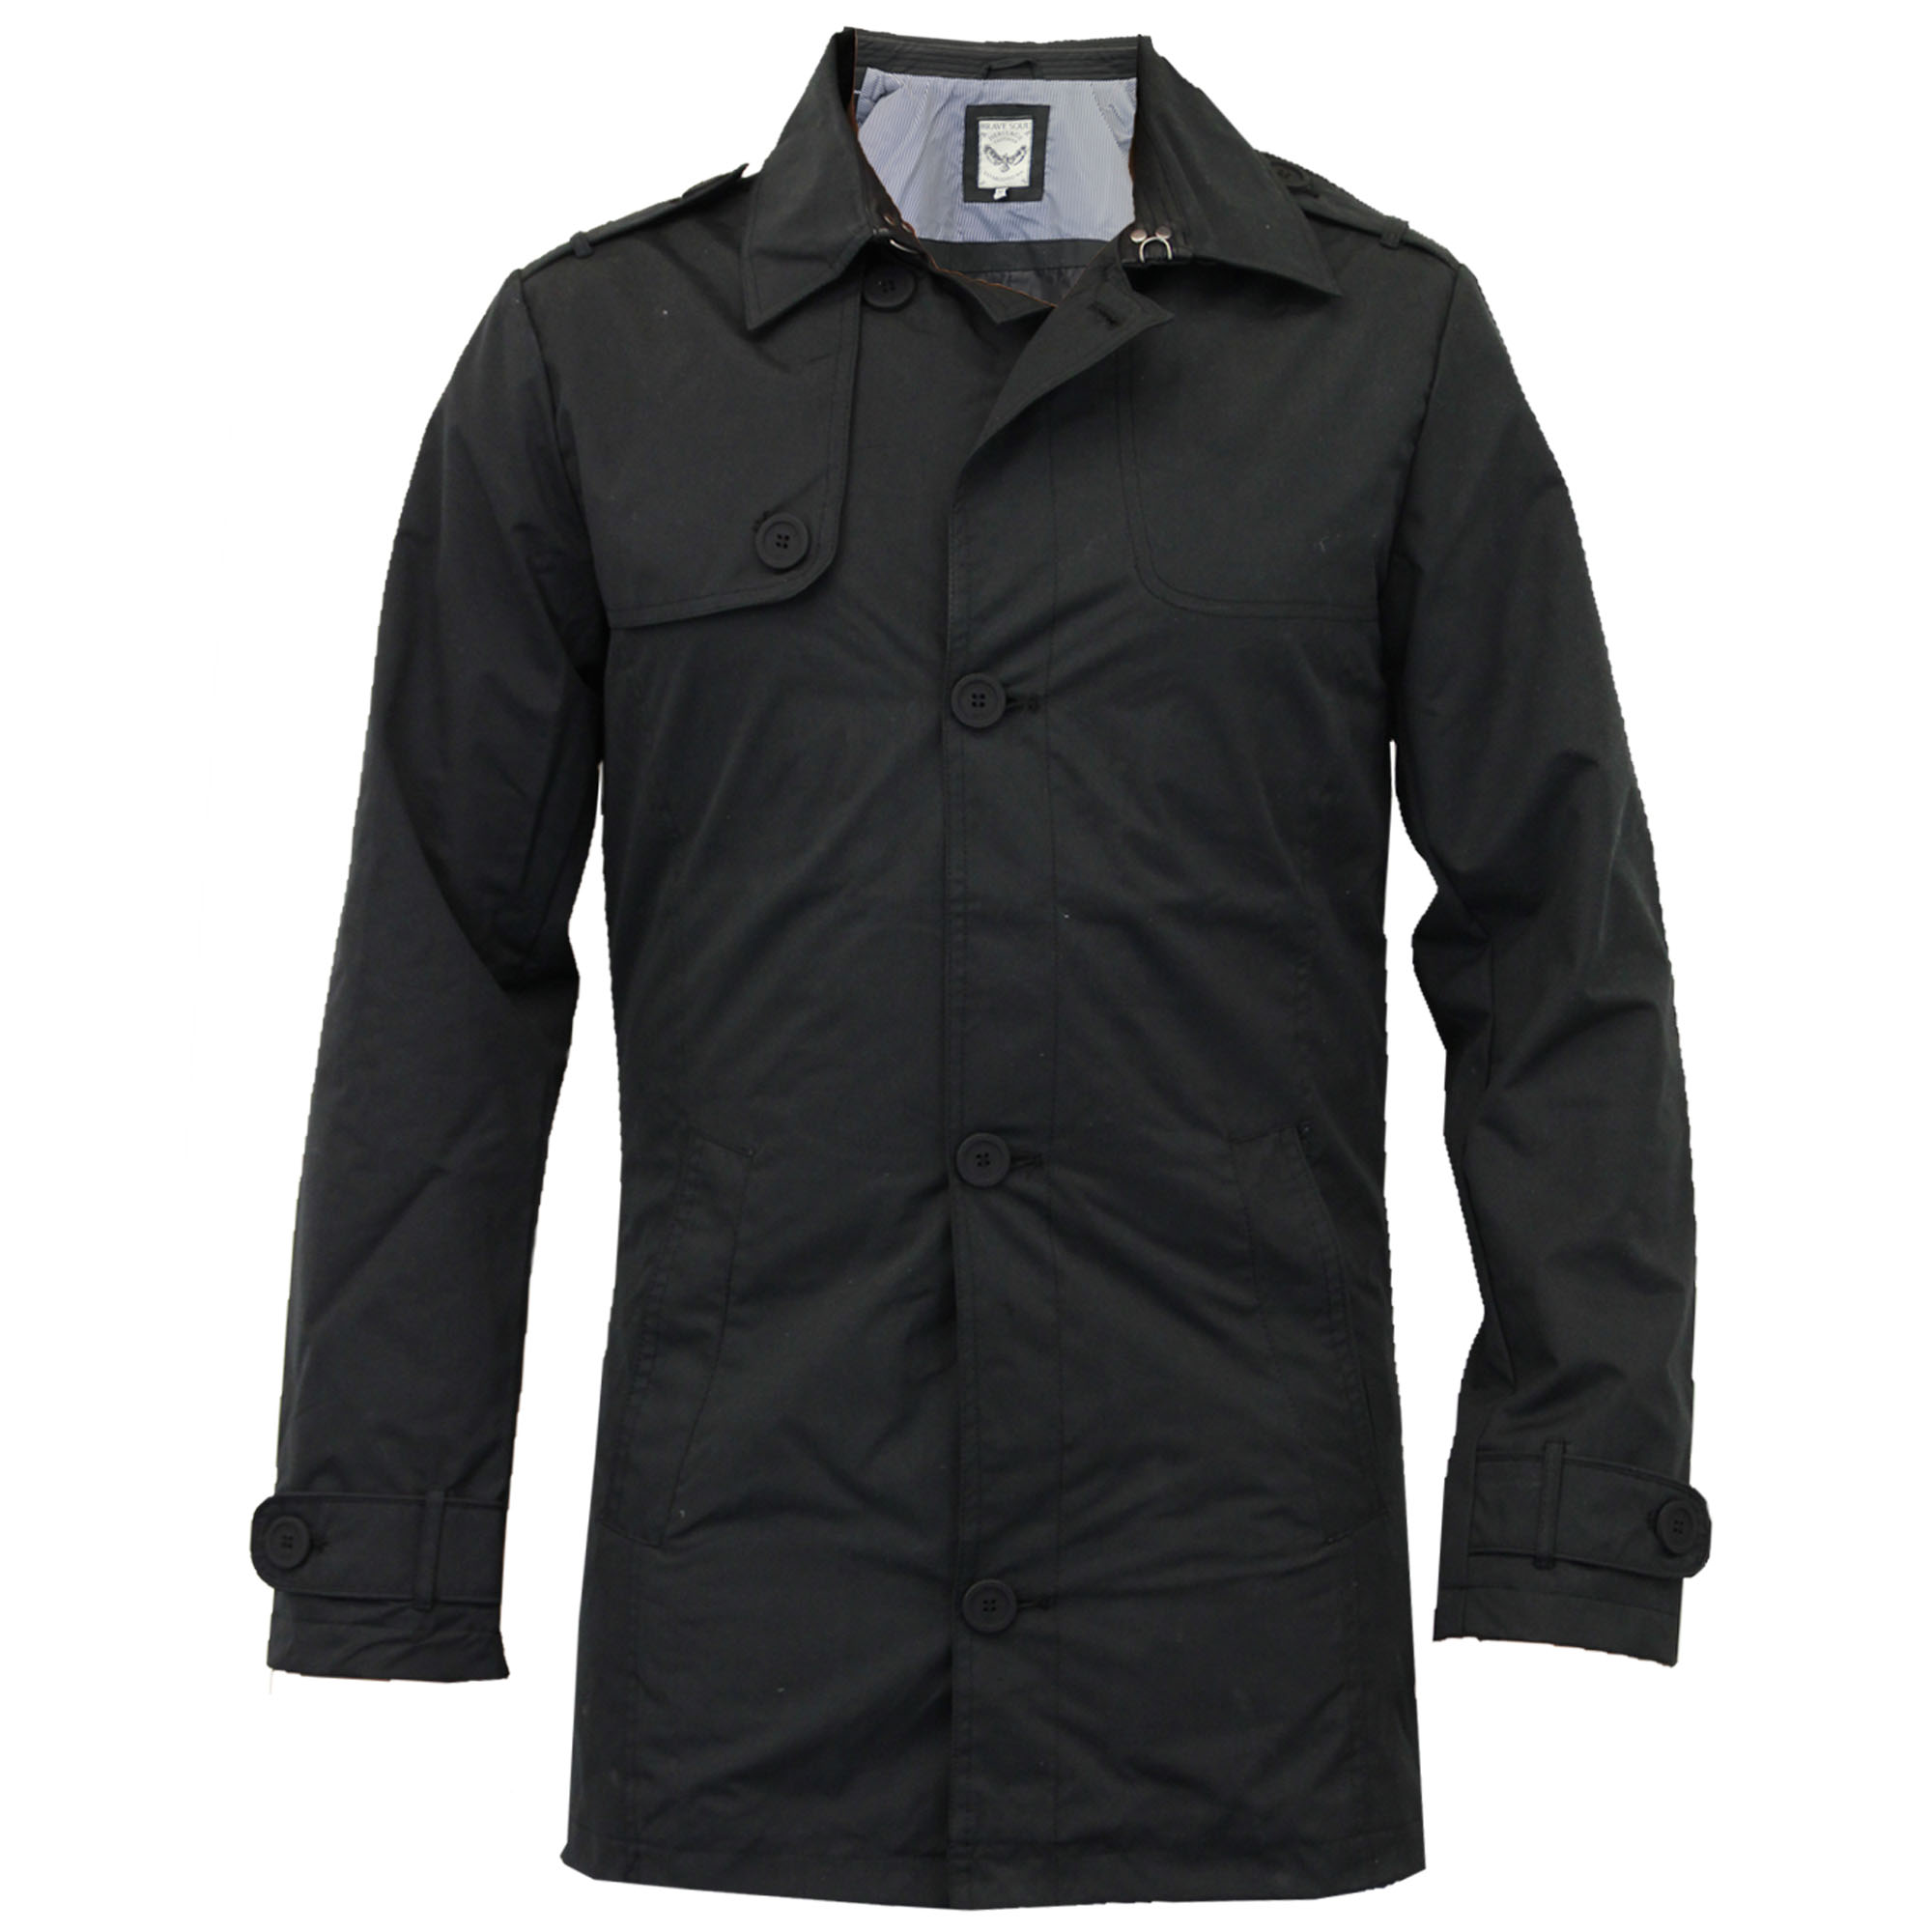 Shop ASOS' range of men's trench coats and raincoats. Shop from a variety of rainy-day outerwear. Shop today at ASOS.